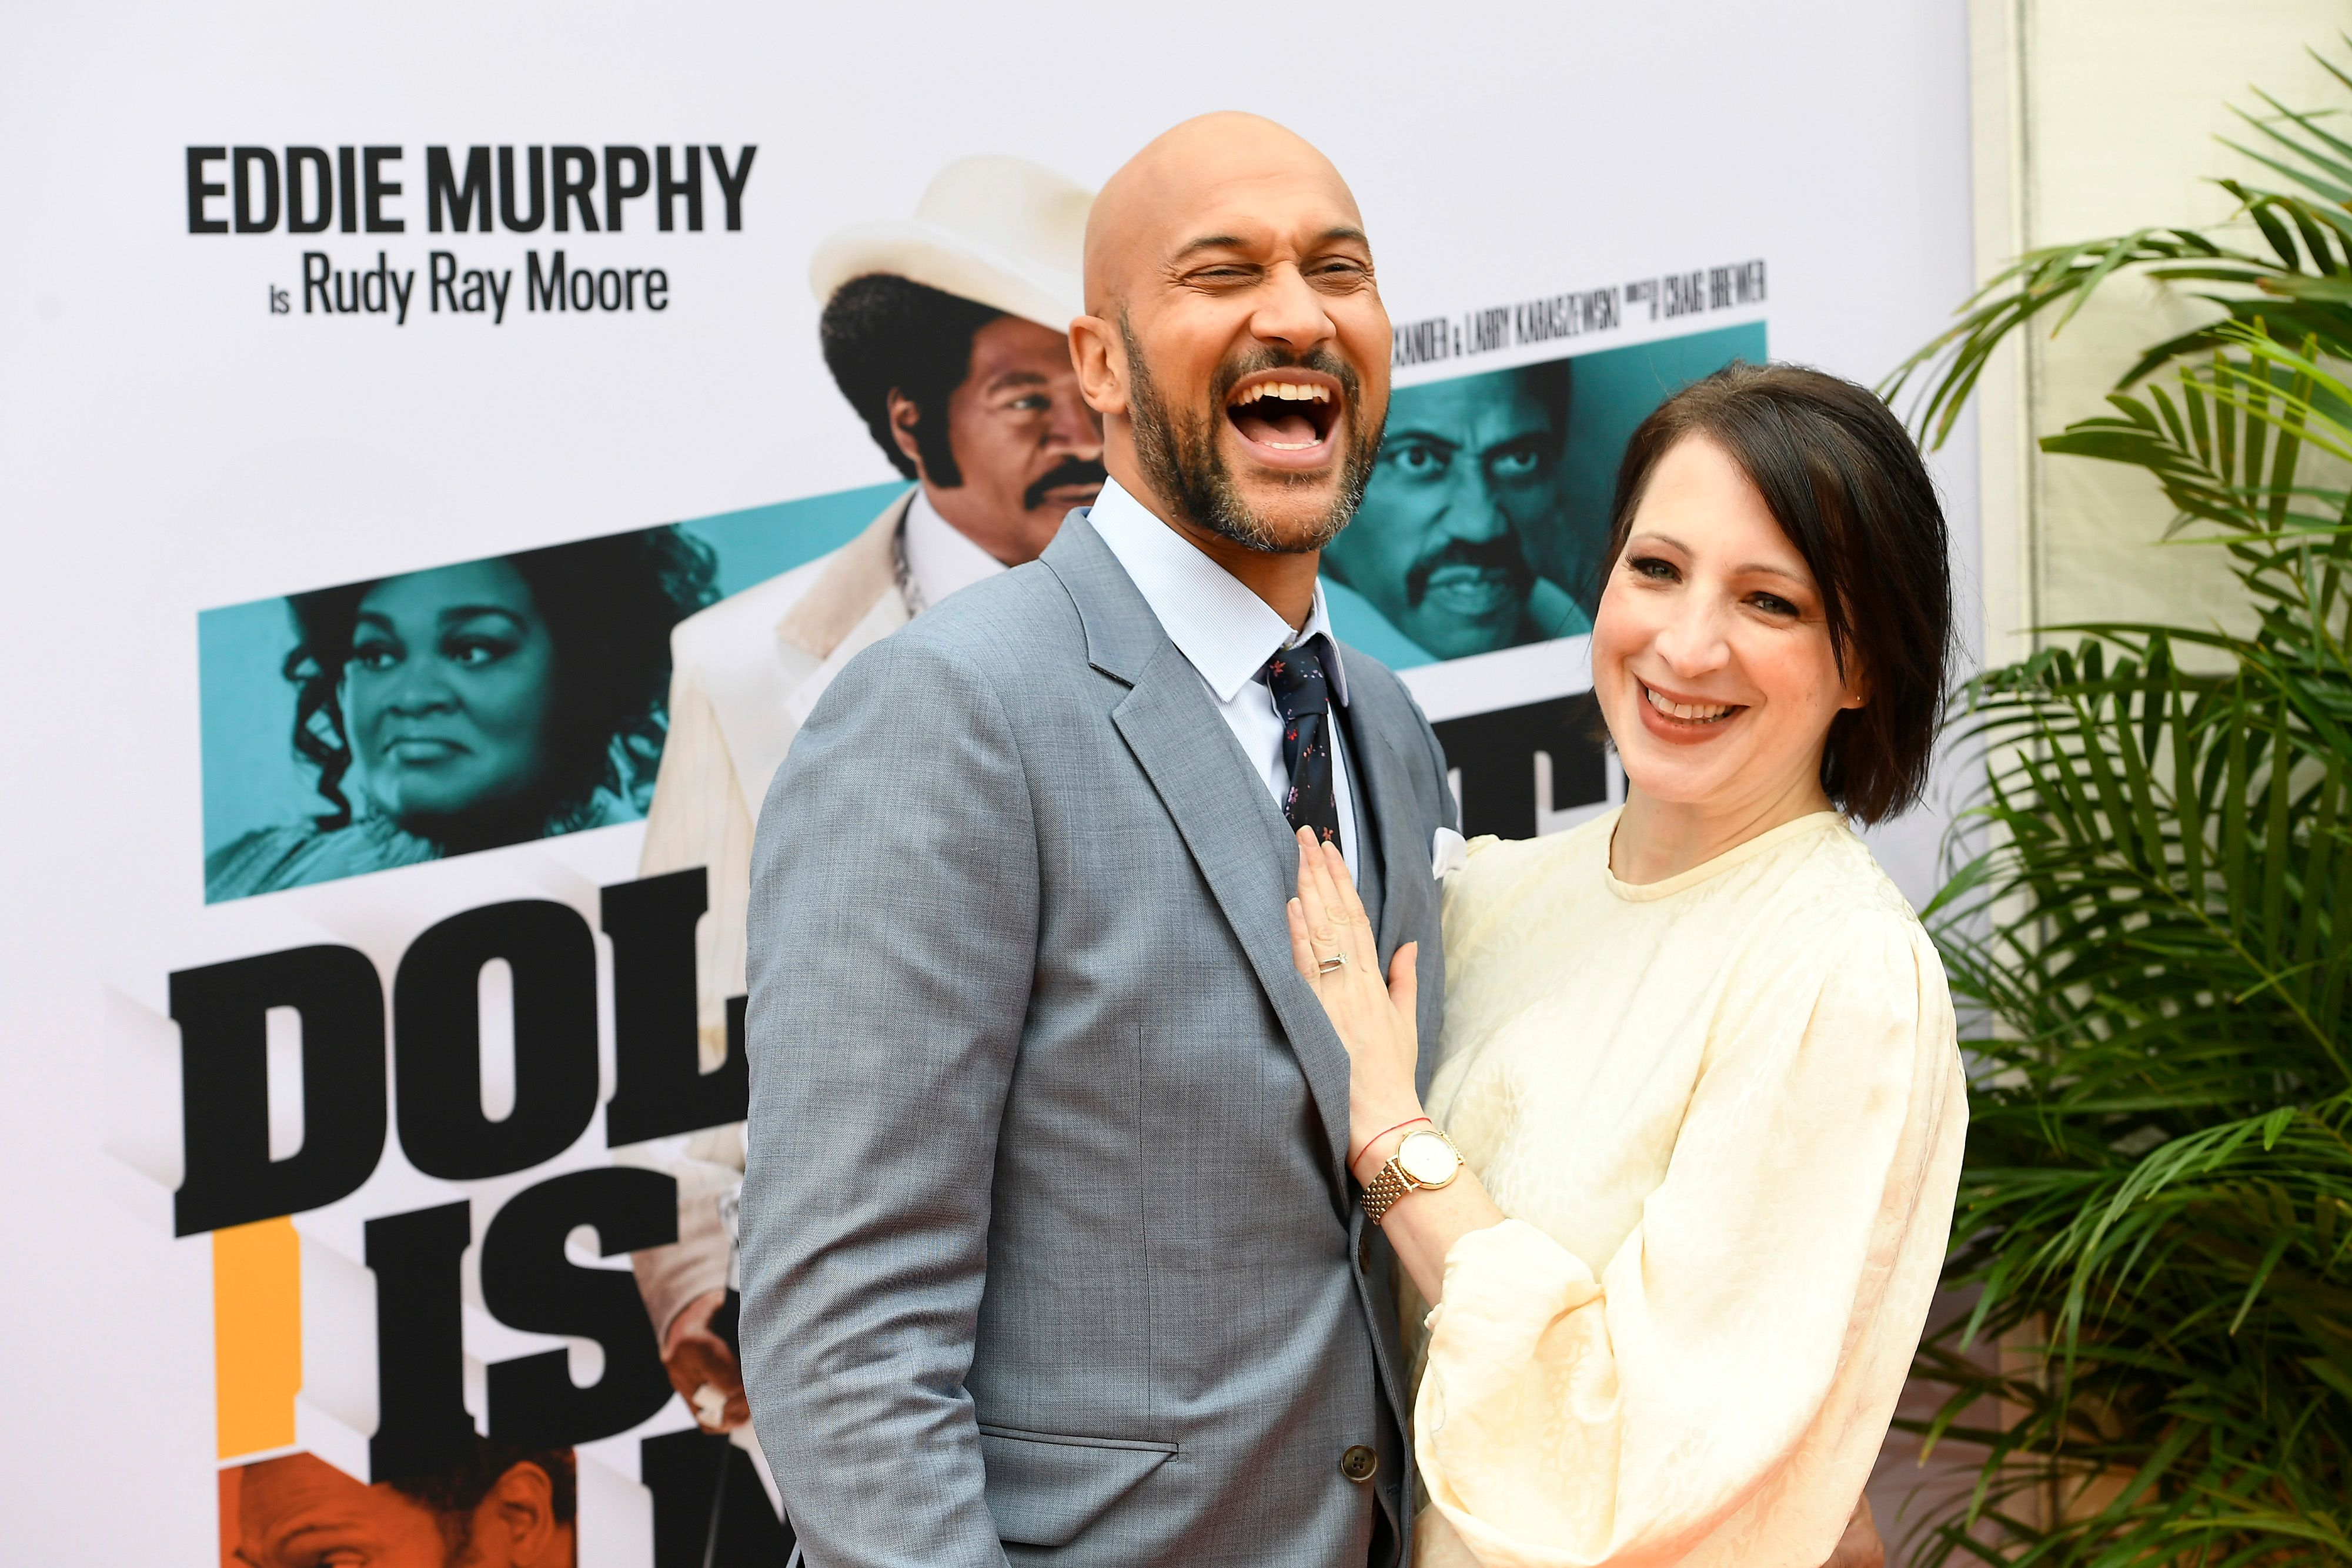 """Keegan-Michael Key and wife Elisa Key at the LA premiere of Netflix's """"Dolemite Is My Name"""" in 2019 in Westwood, California   Source: Getty Images"""